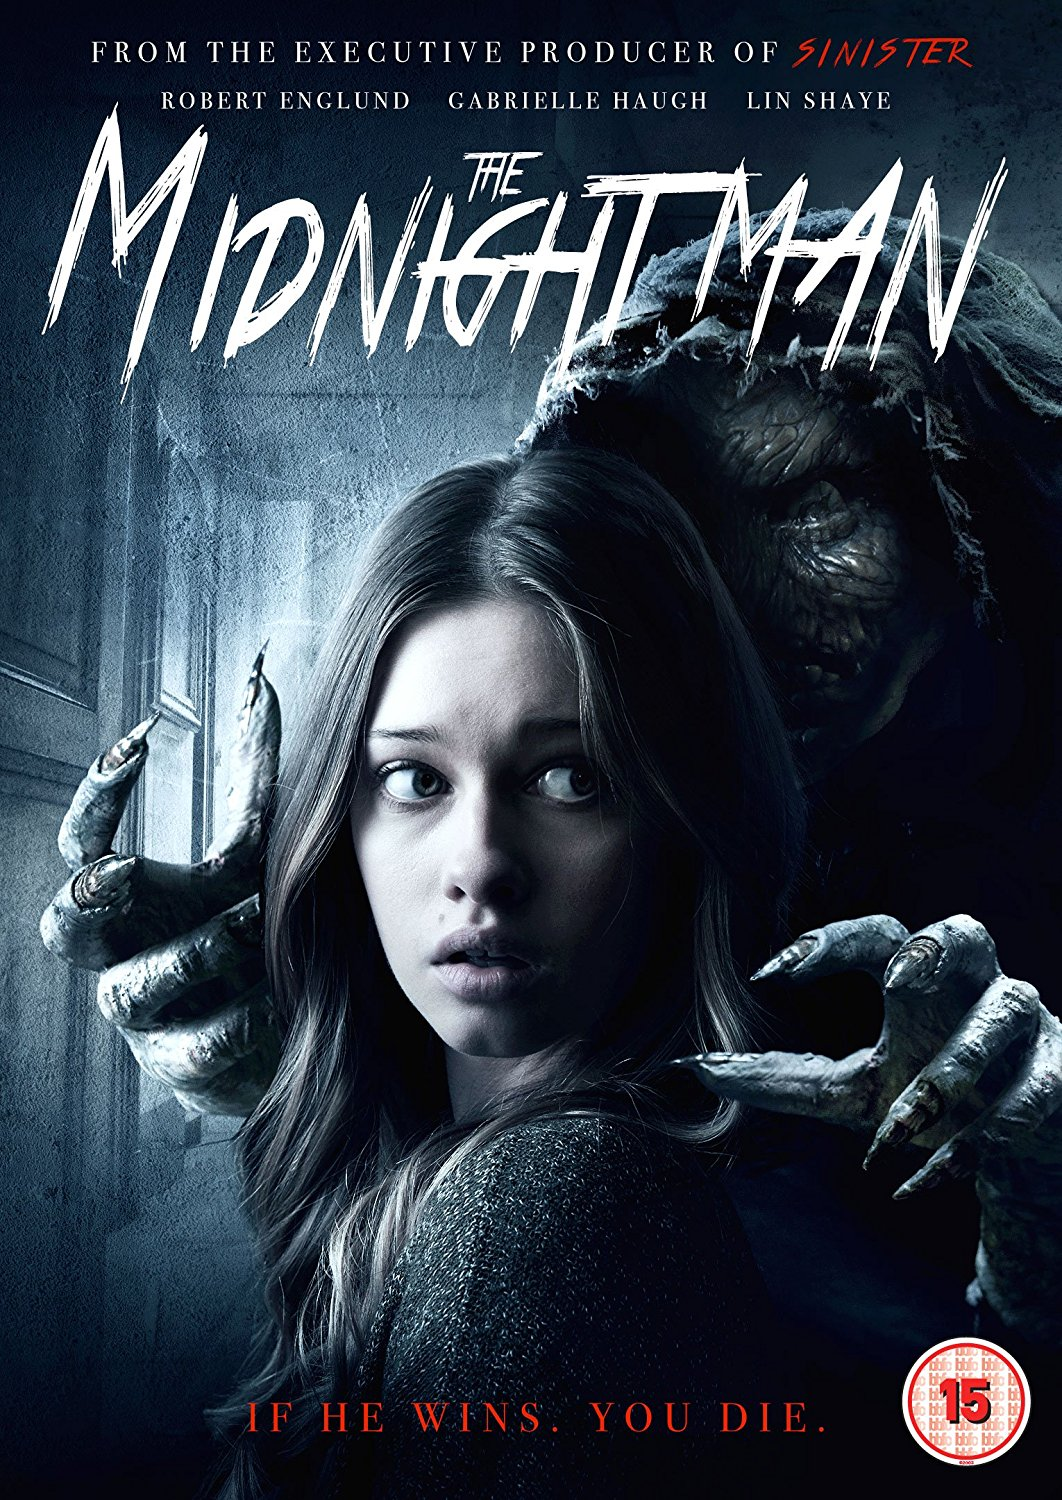 The Midnight Man Film